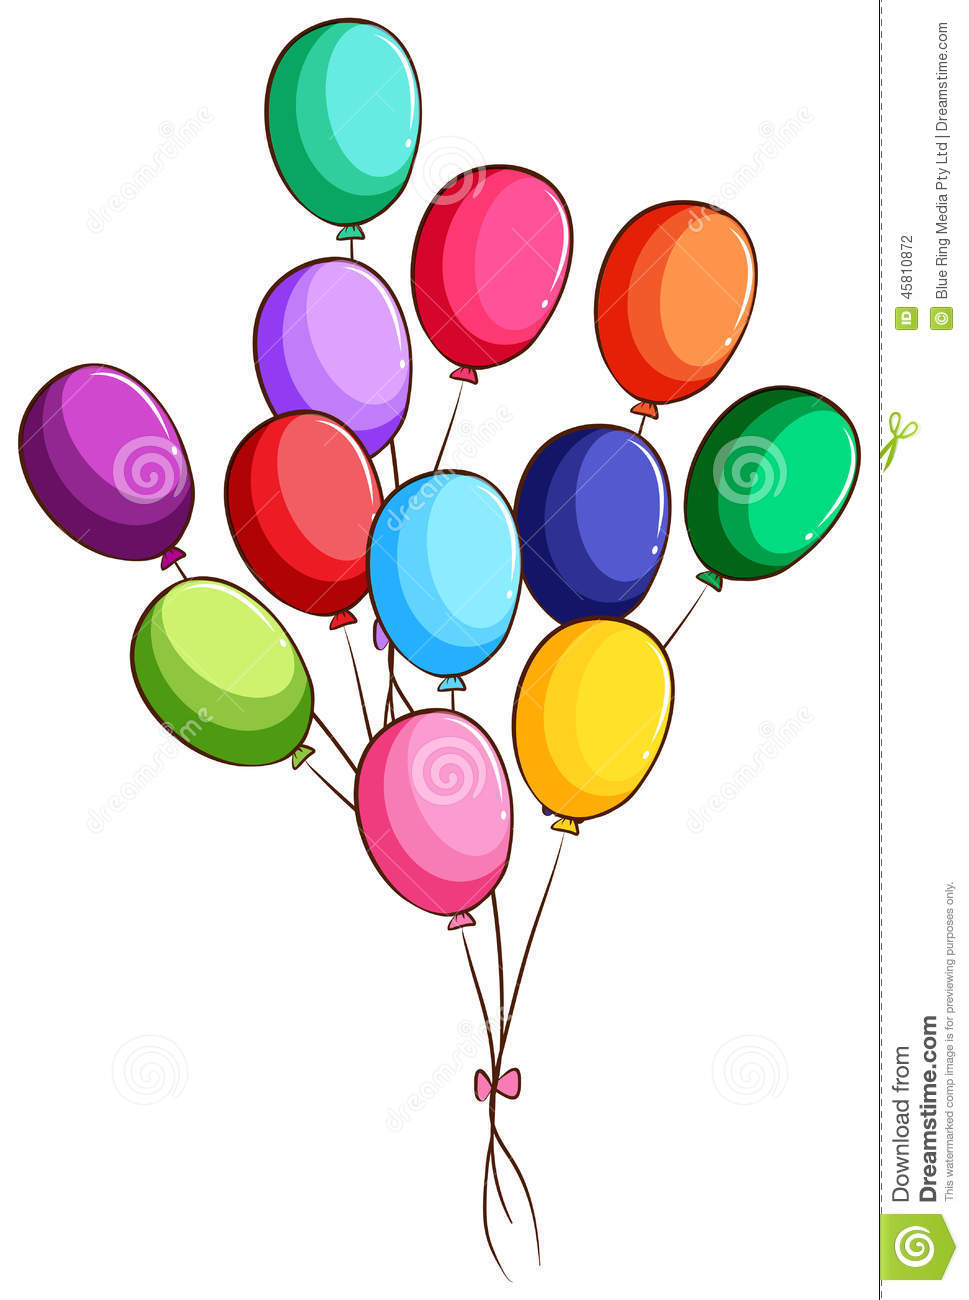 A simple drawing of a group of balloons stock vector illustration of group background 45810872